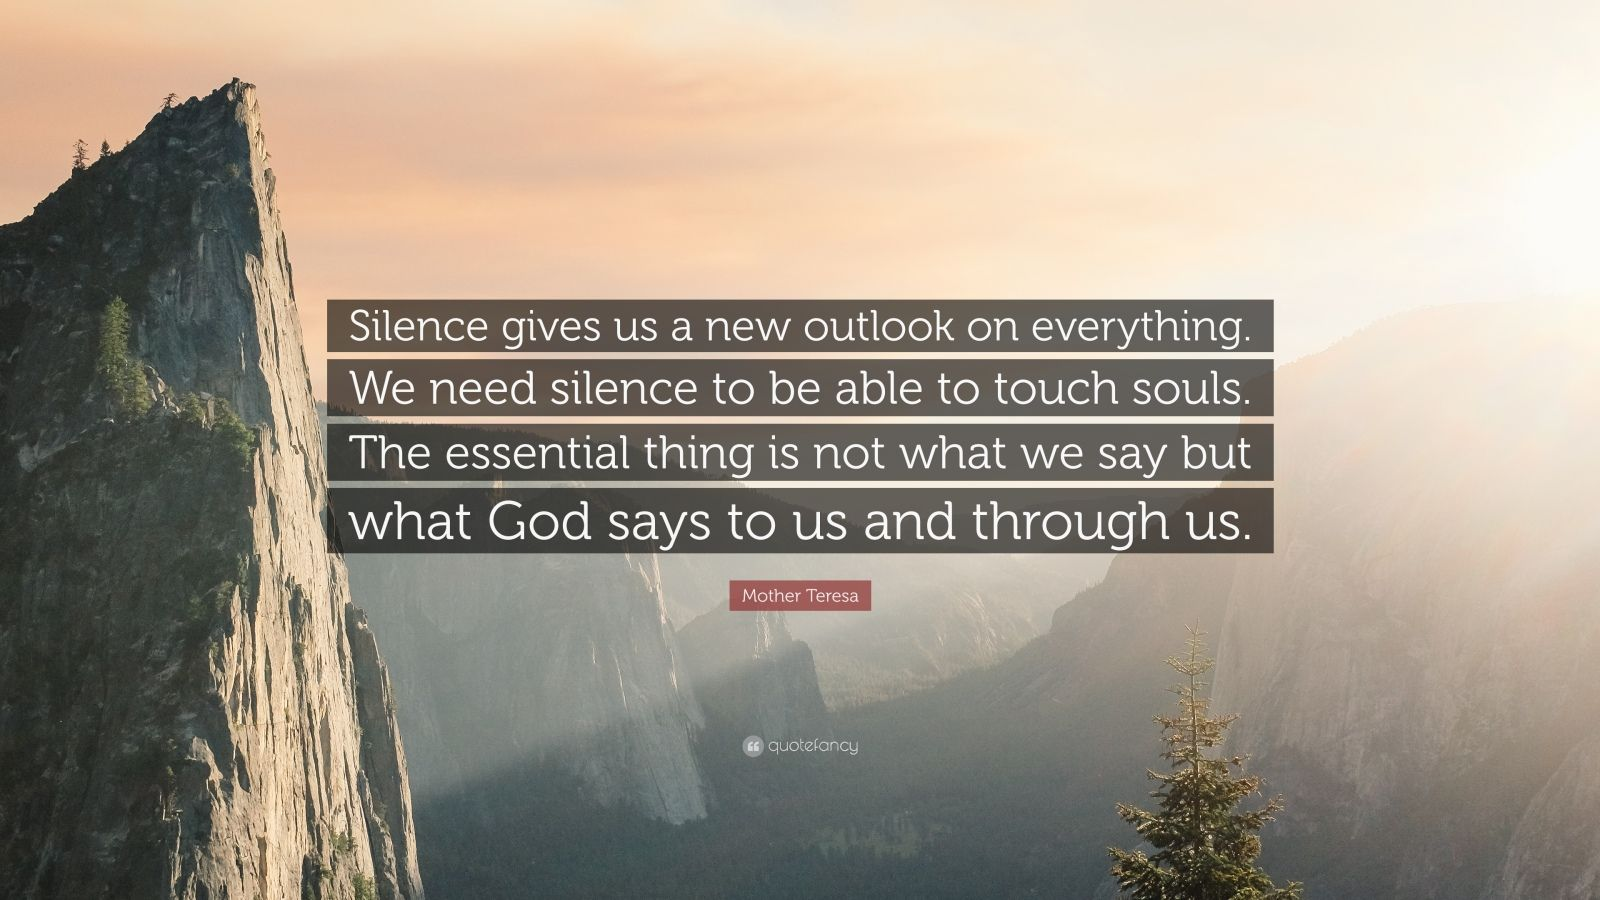 """Mother Teresa Quote: """"Silence gives us a new outlook on everything. We need silence to be able to touch souls. The essential thing is not what we say but what God says to us and through us."""""""